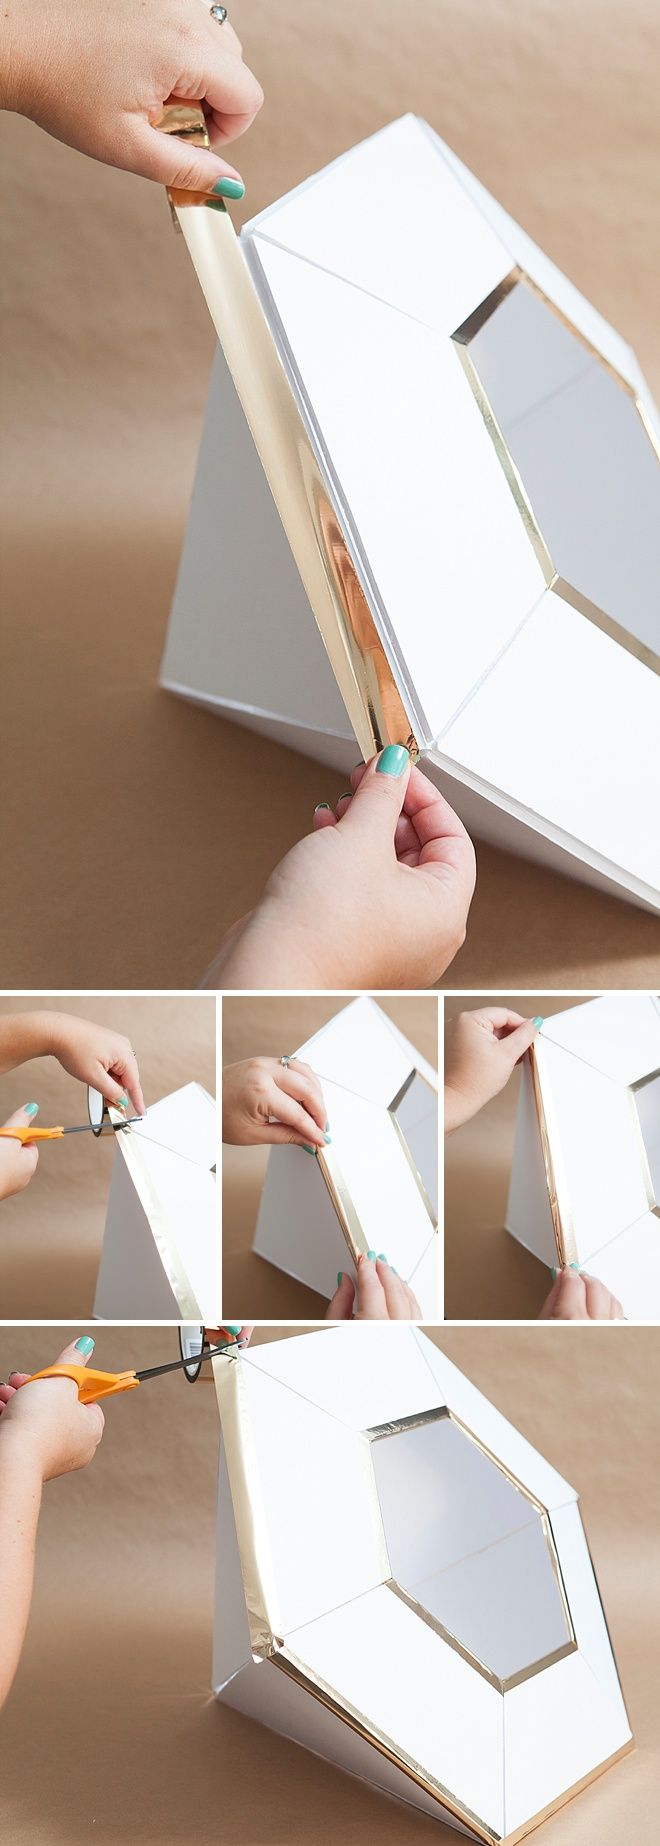 DIY, Giant Diamond Card Box For Weddings!